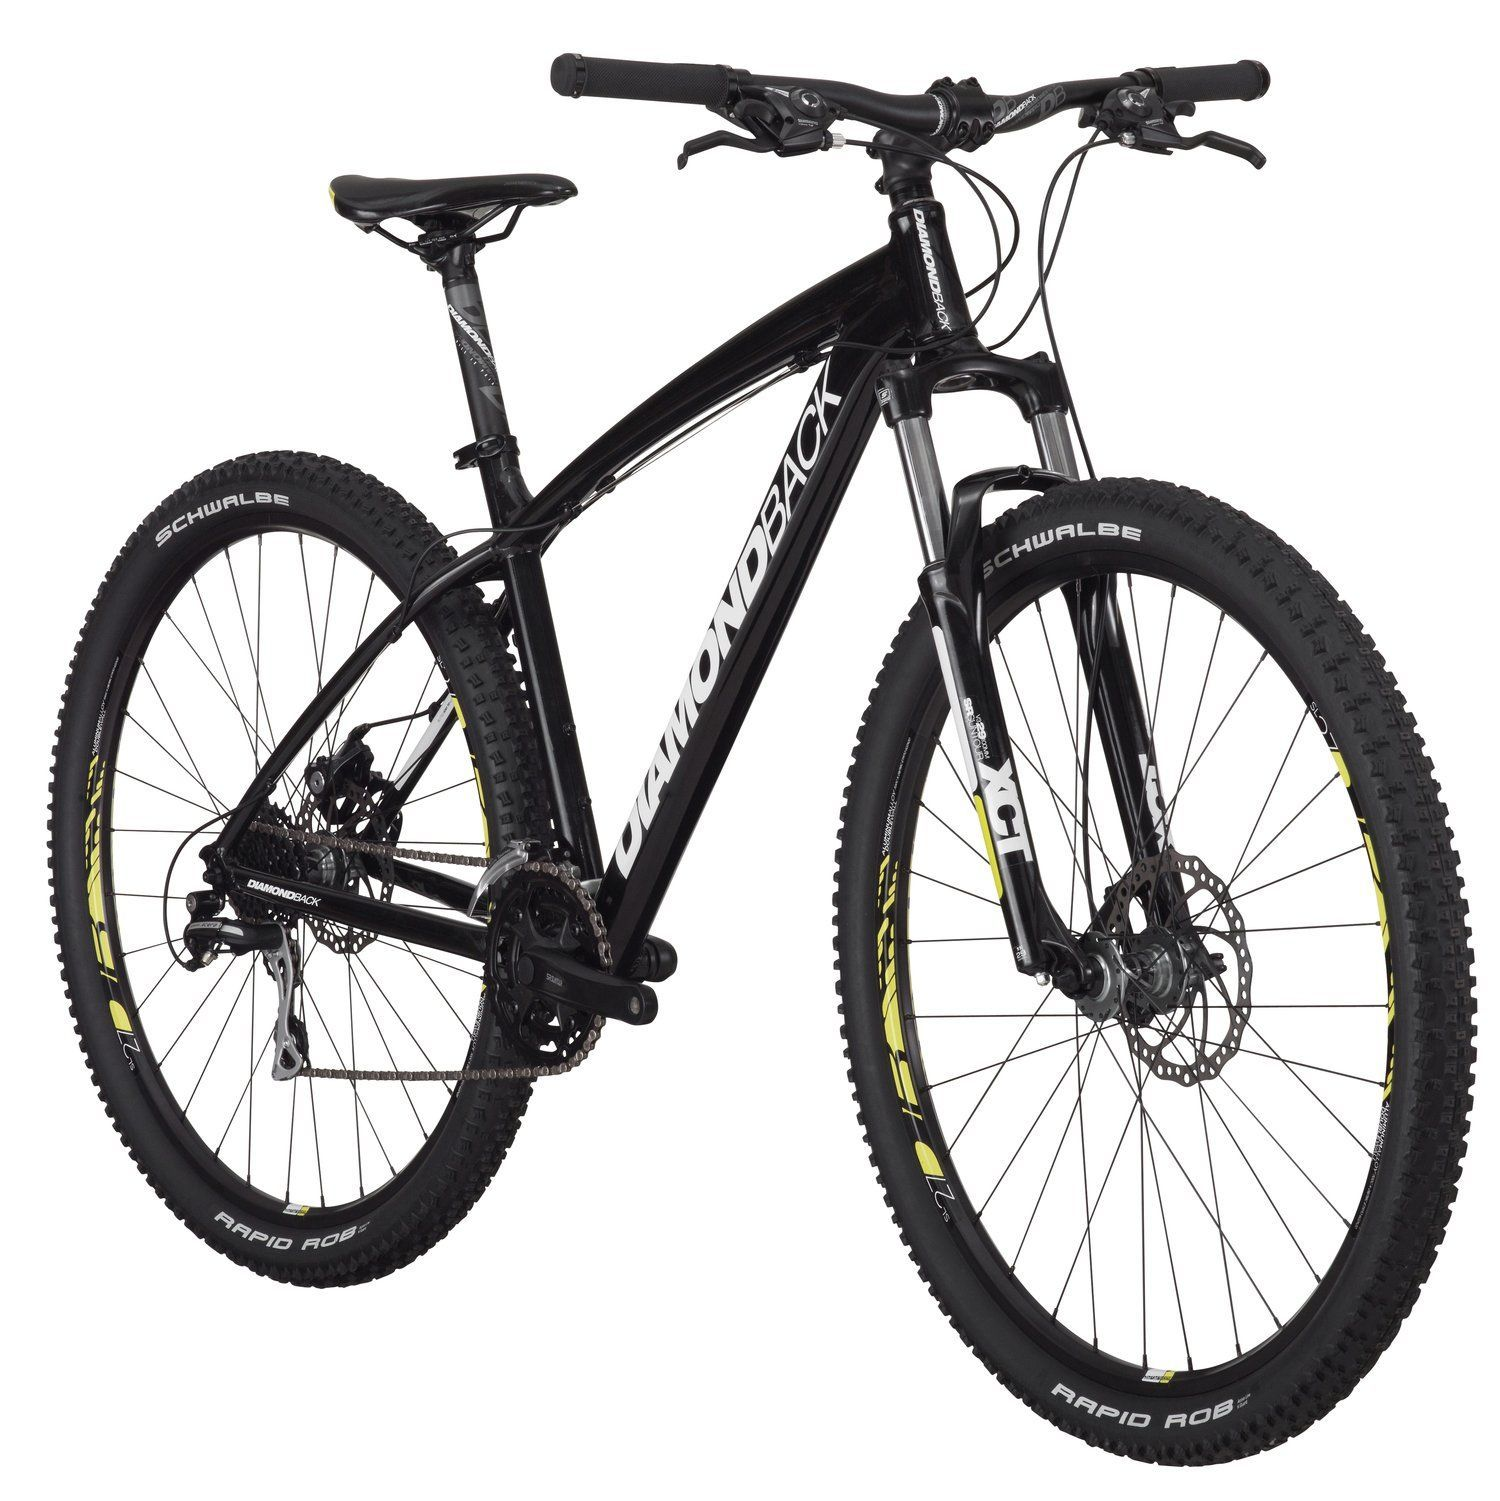 DiamondBack OverDrive Bike 29er HardTail 2017 (CLOSEOUT) | Mountain ...